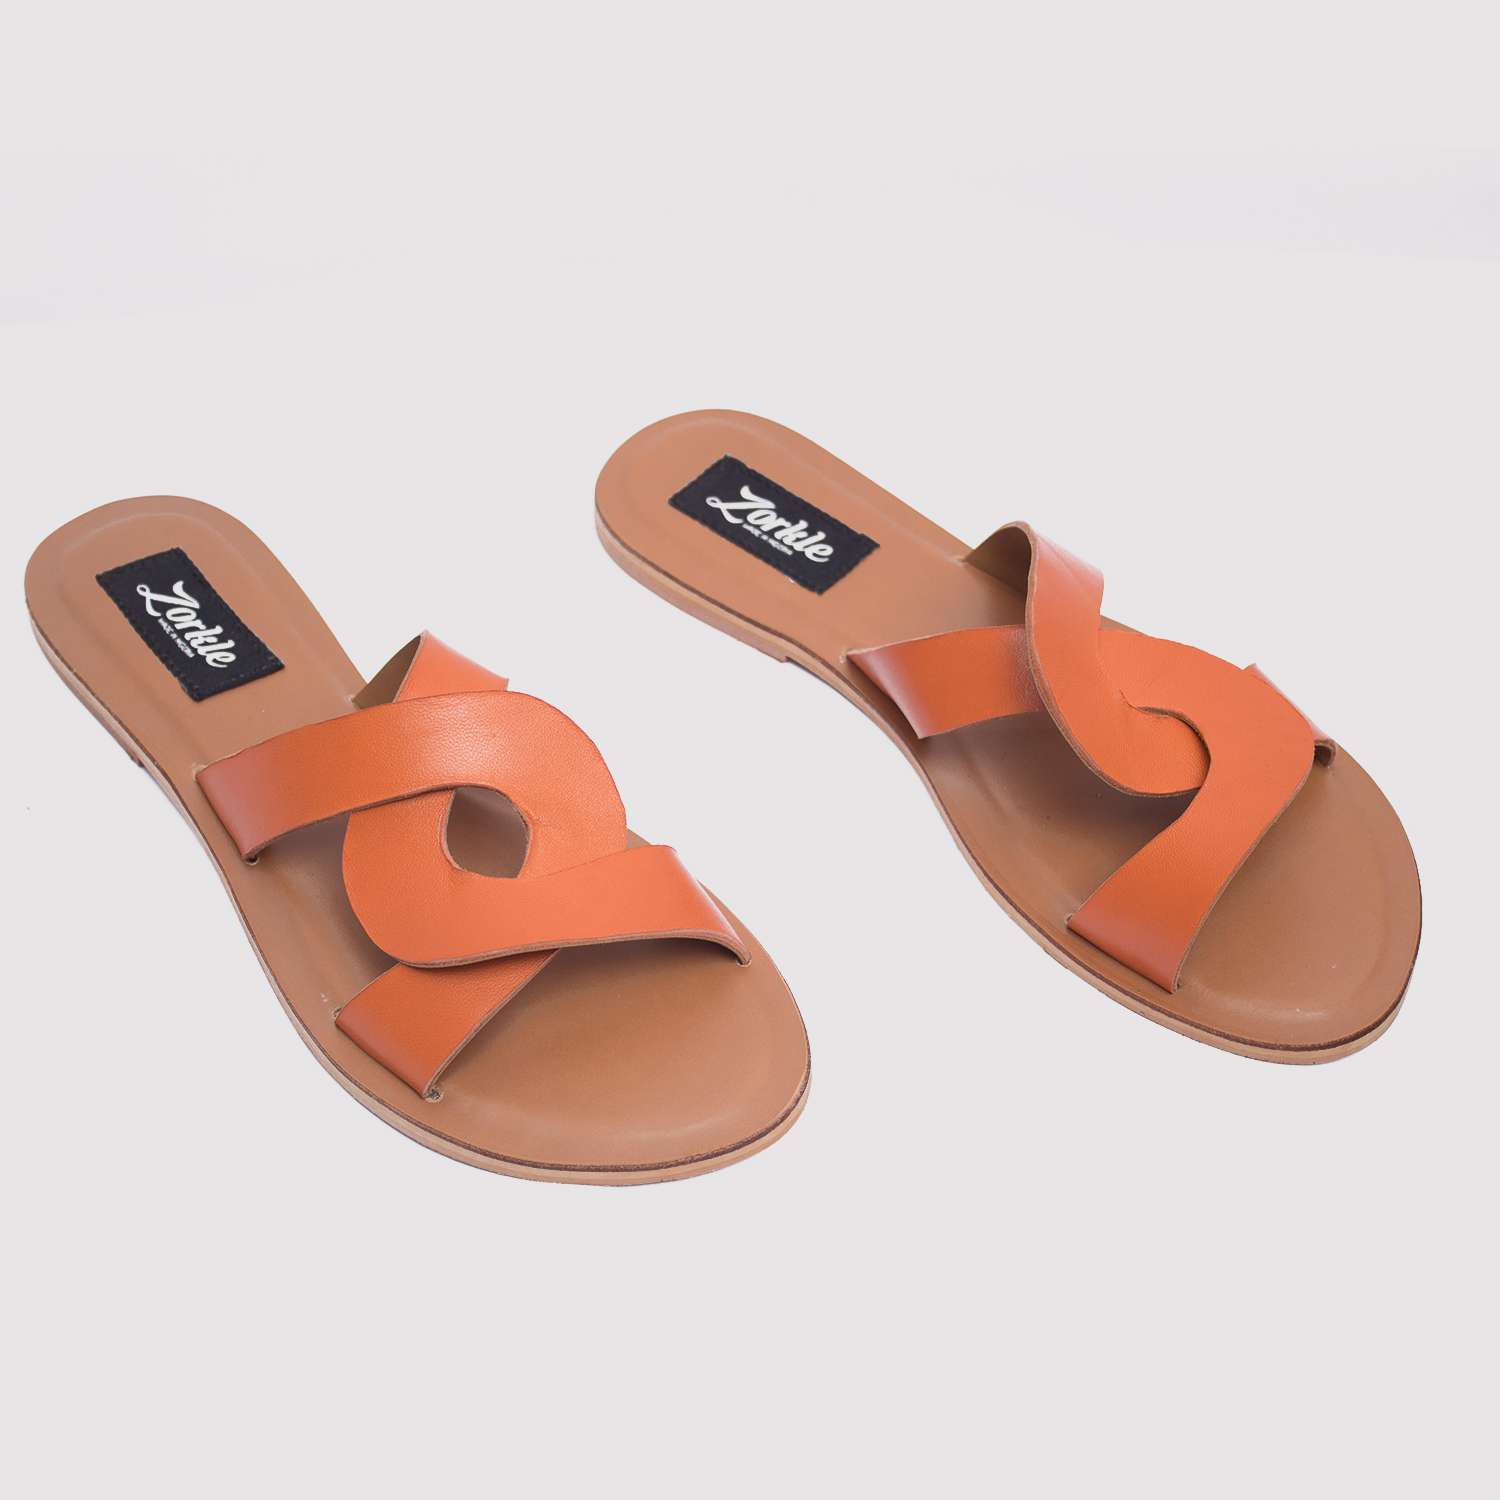 083ddf0e3aa1 CeeCee slippers brown leather zorkle shoes in lagos nigeria ...